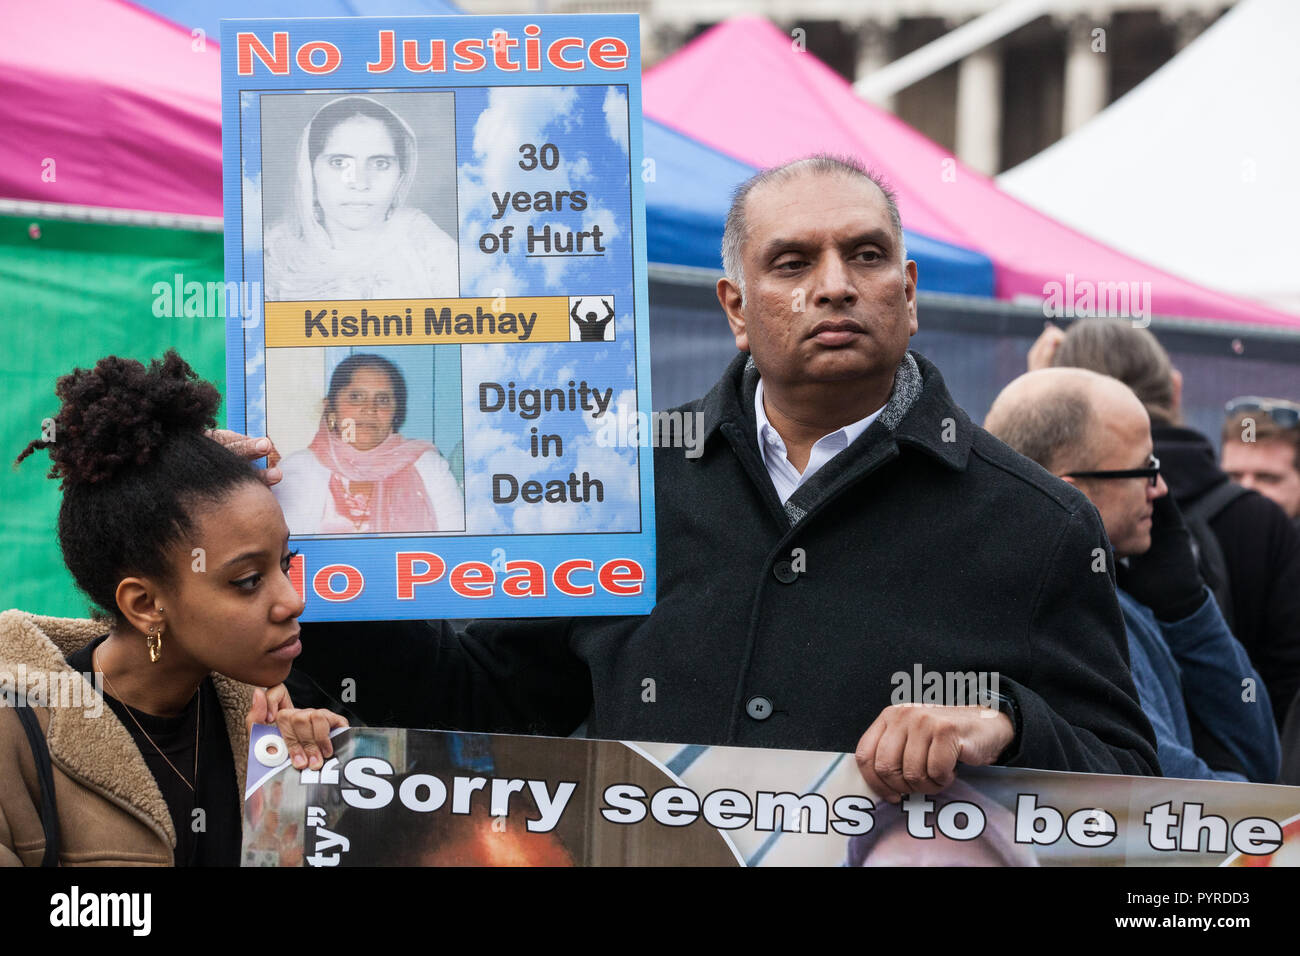 London, UK. 27th October, 2018. Raj Mahay, son of Kishni Mahay, prepares to march with the United Families and Friends Campaign to Downing Street. - Stock Image